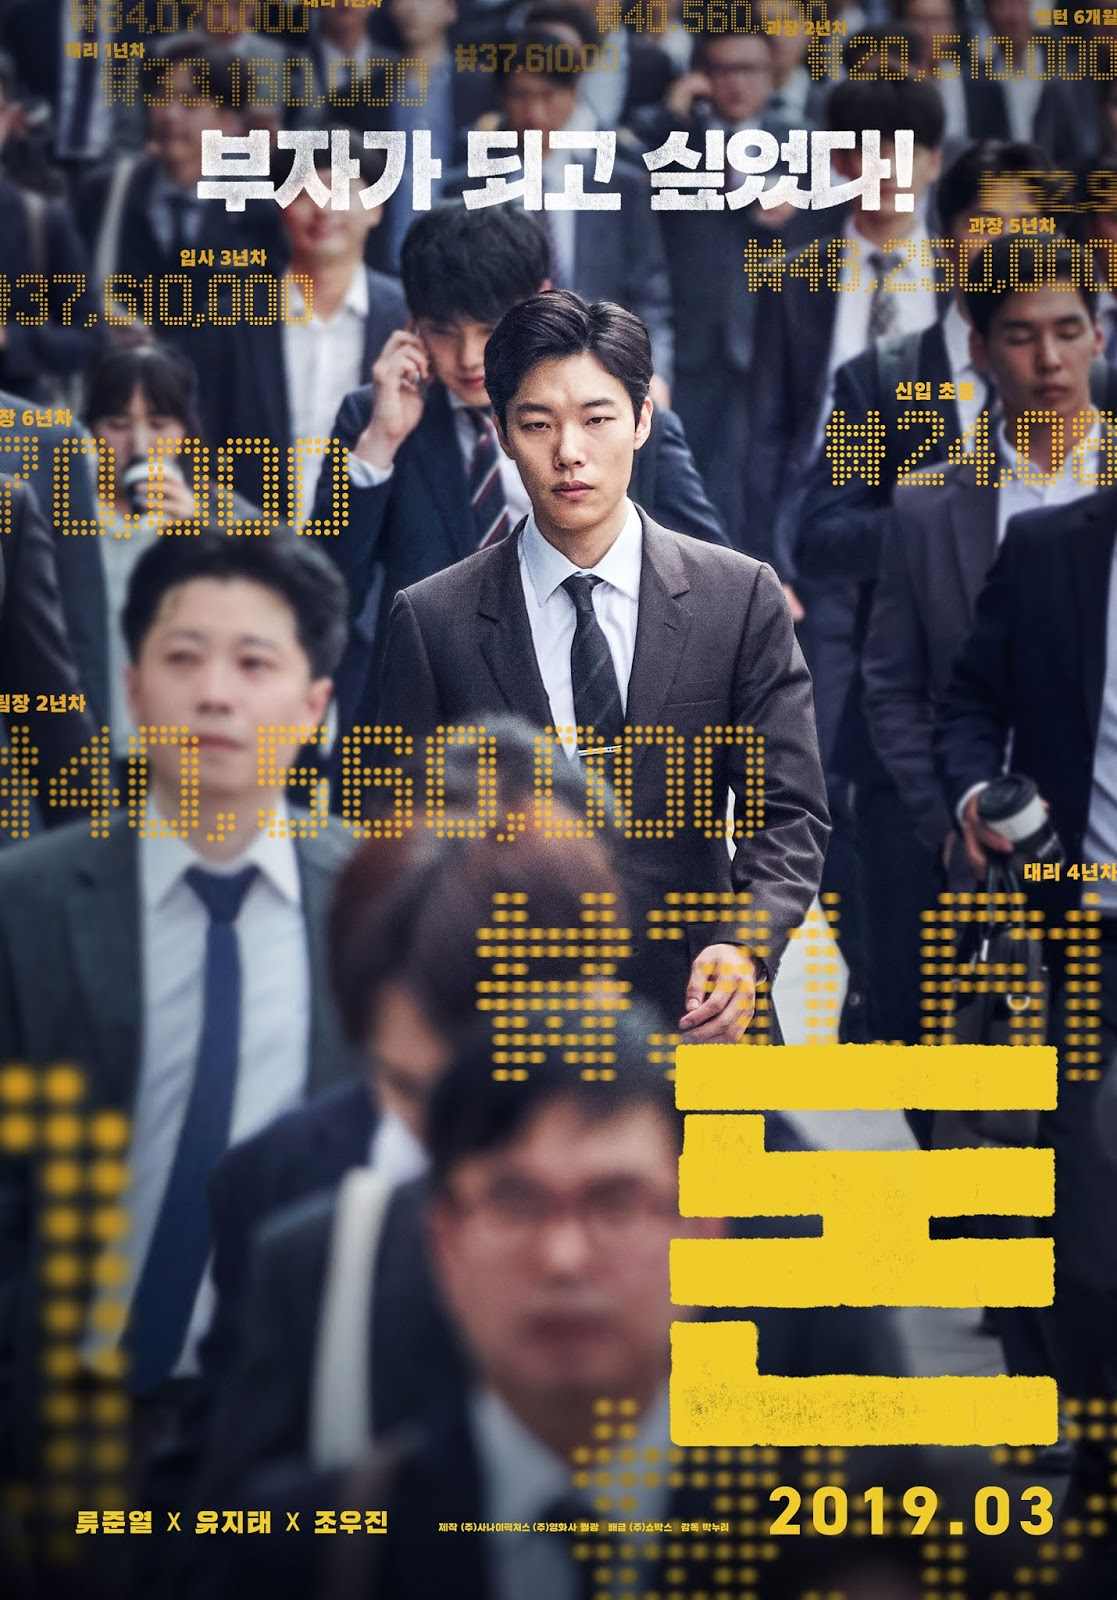 Sinopsis Money / Don / 돈 (2019) - Film Korea Selatan